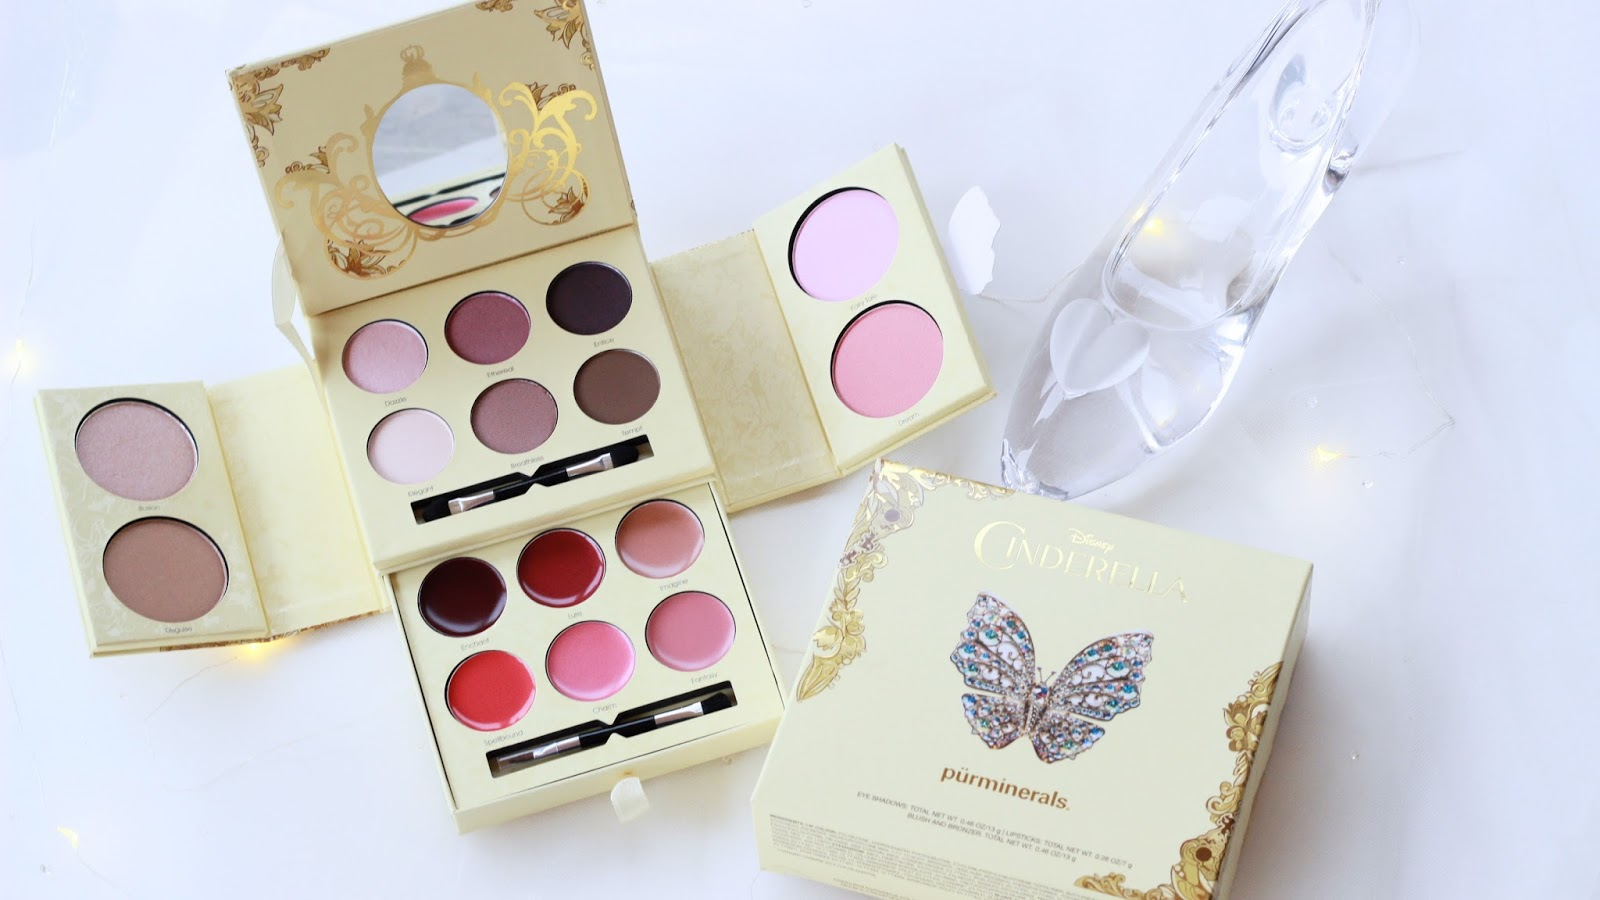 Palette by Pur Minerals